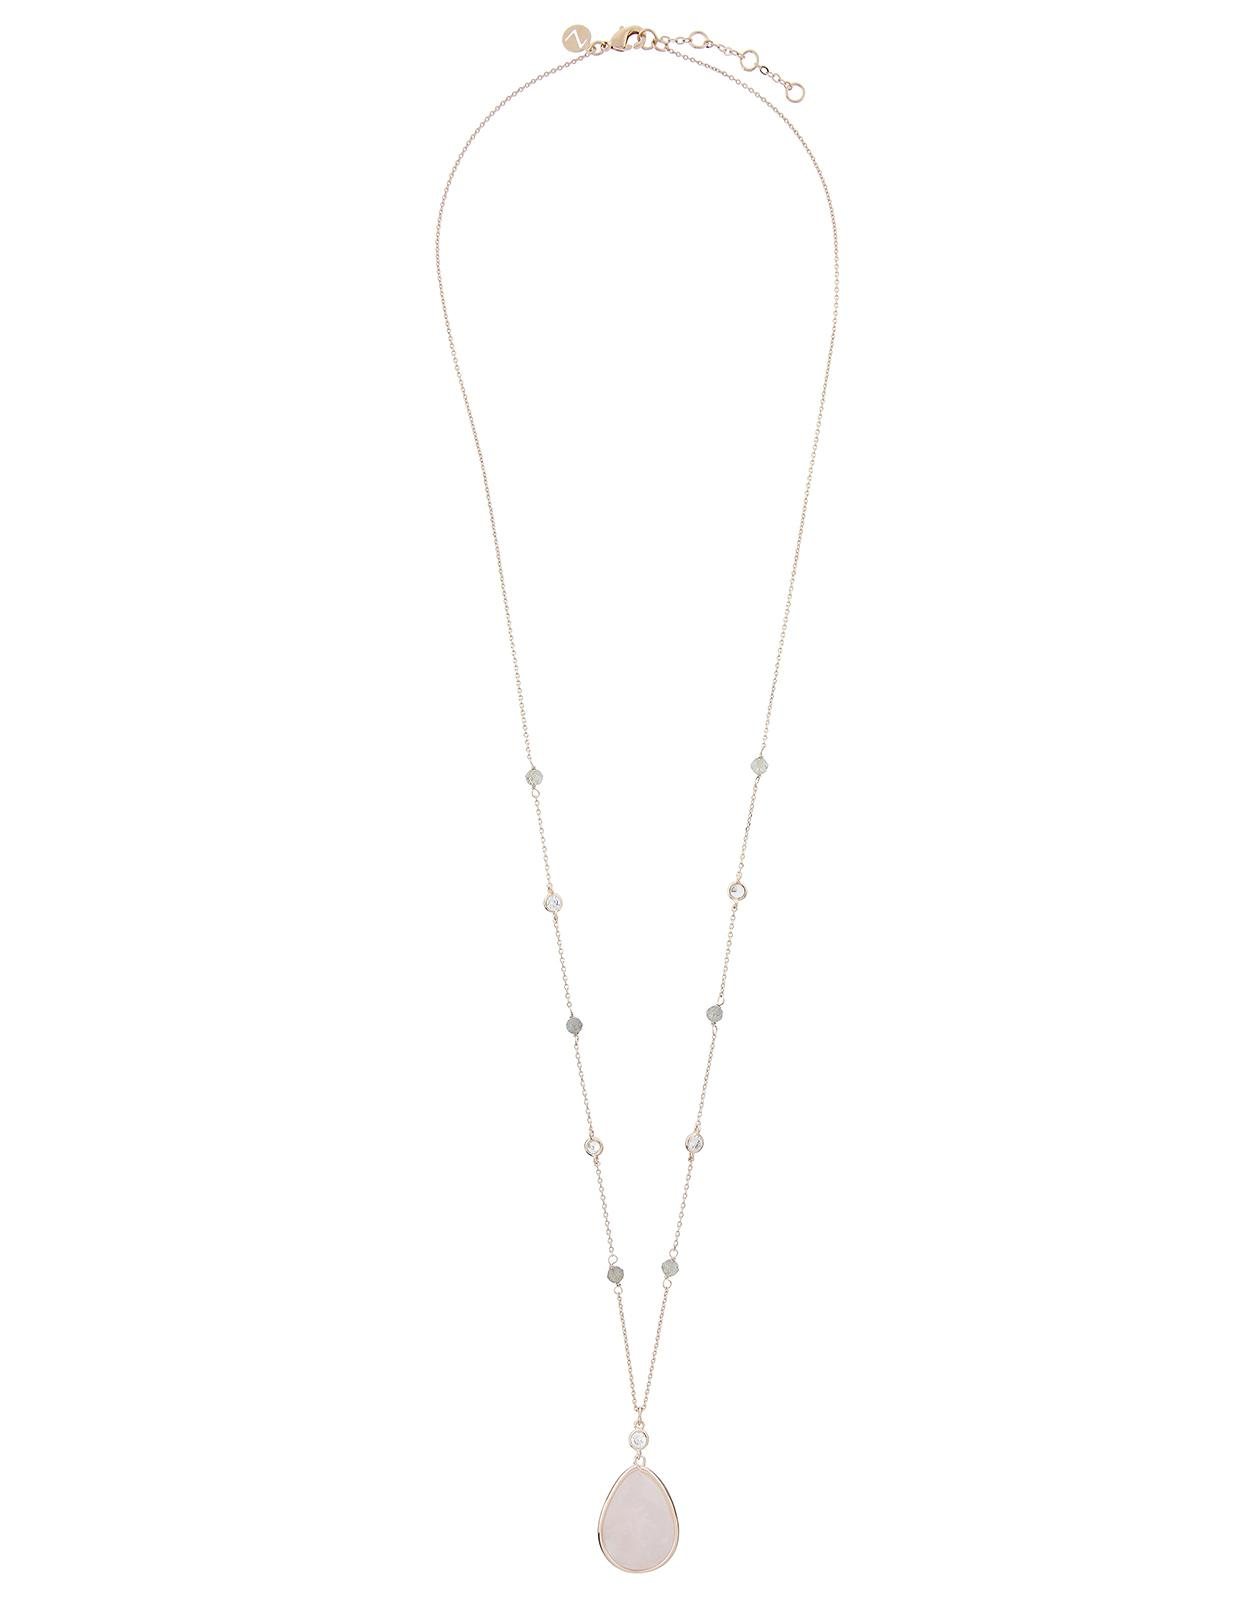 Accessorize Rose Gold Eliza Semi Precious Long Pendant Necklace in Pink